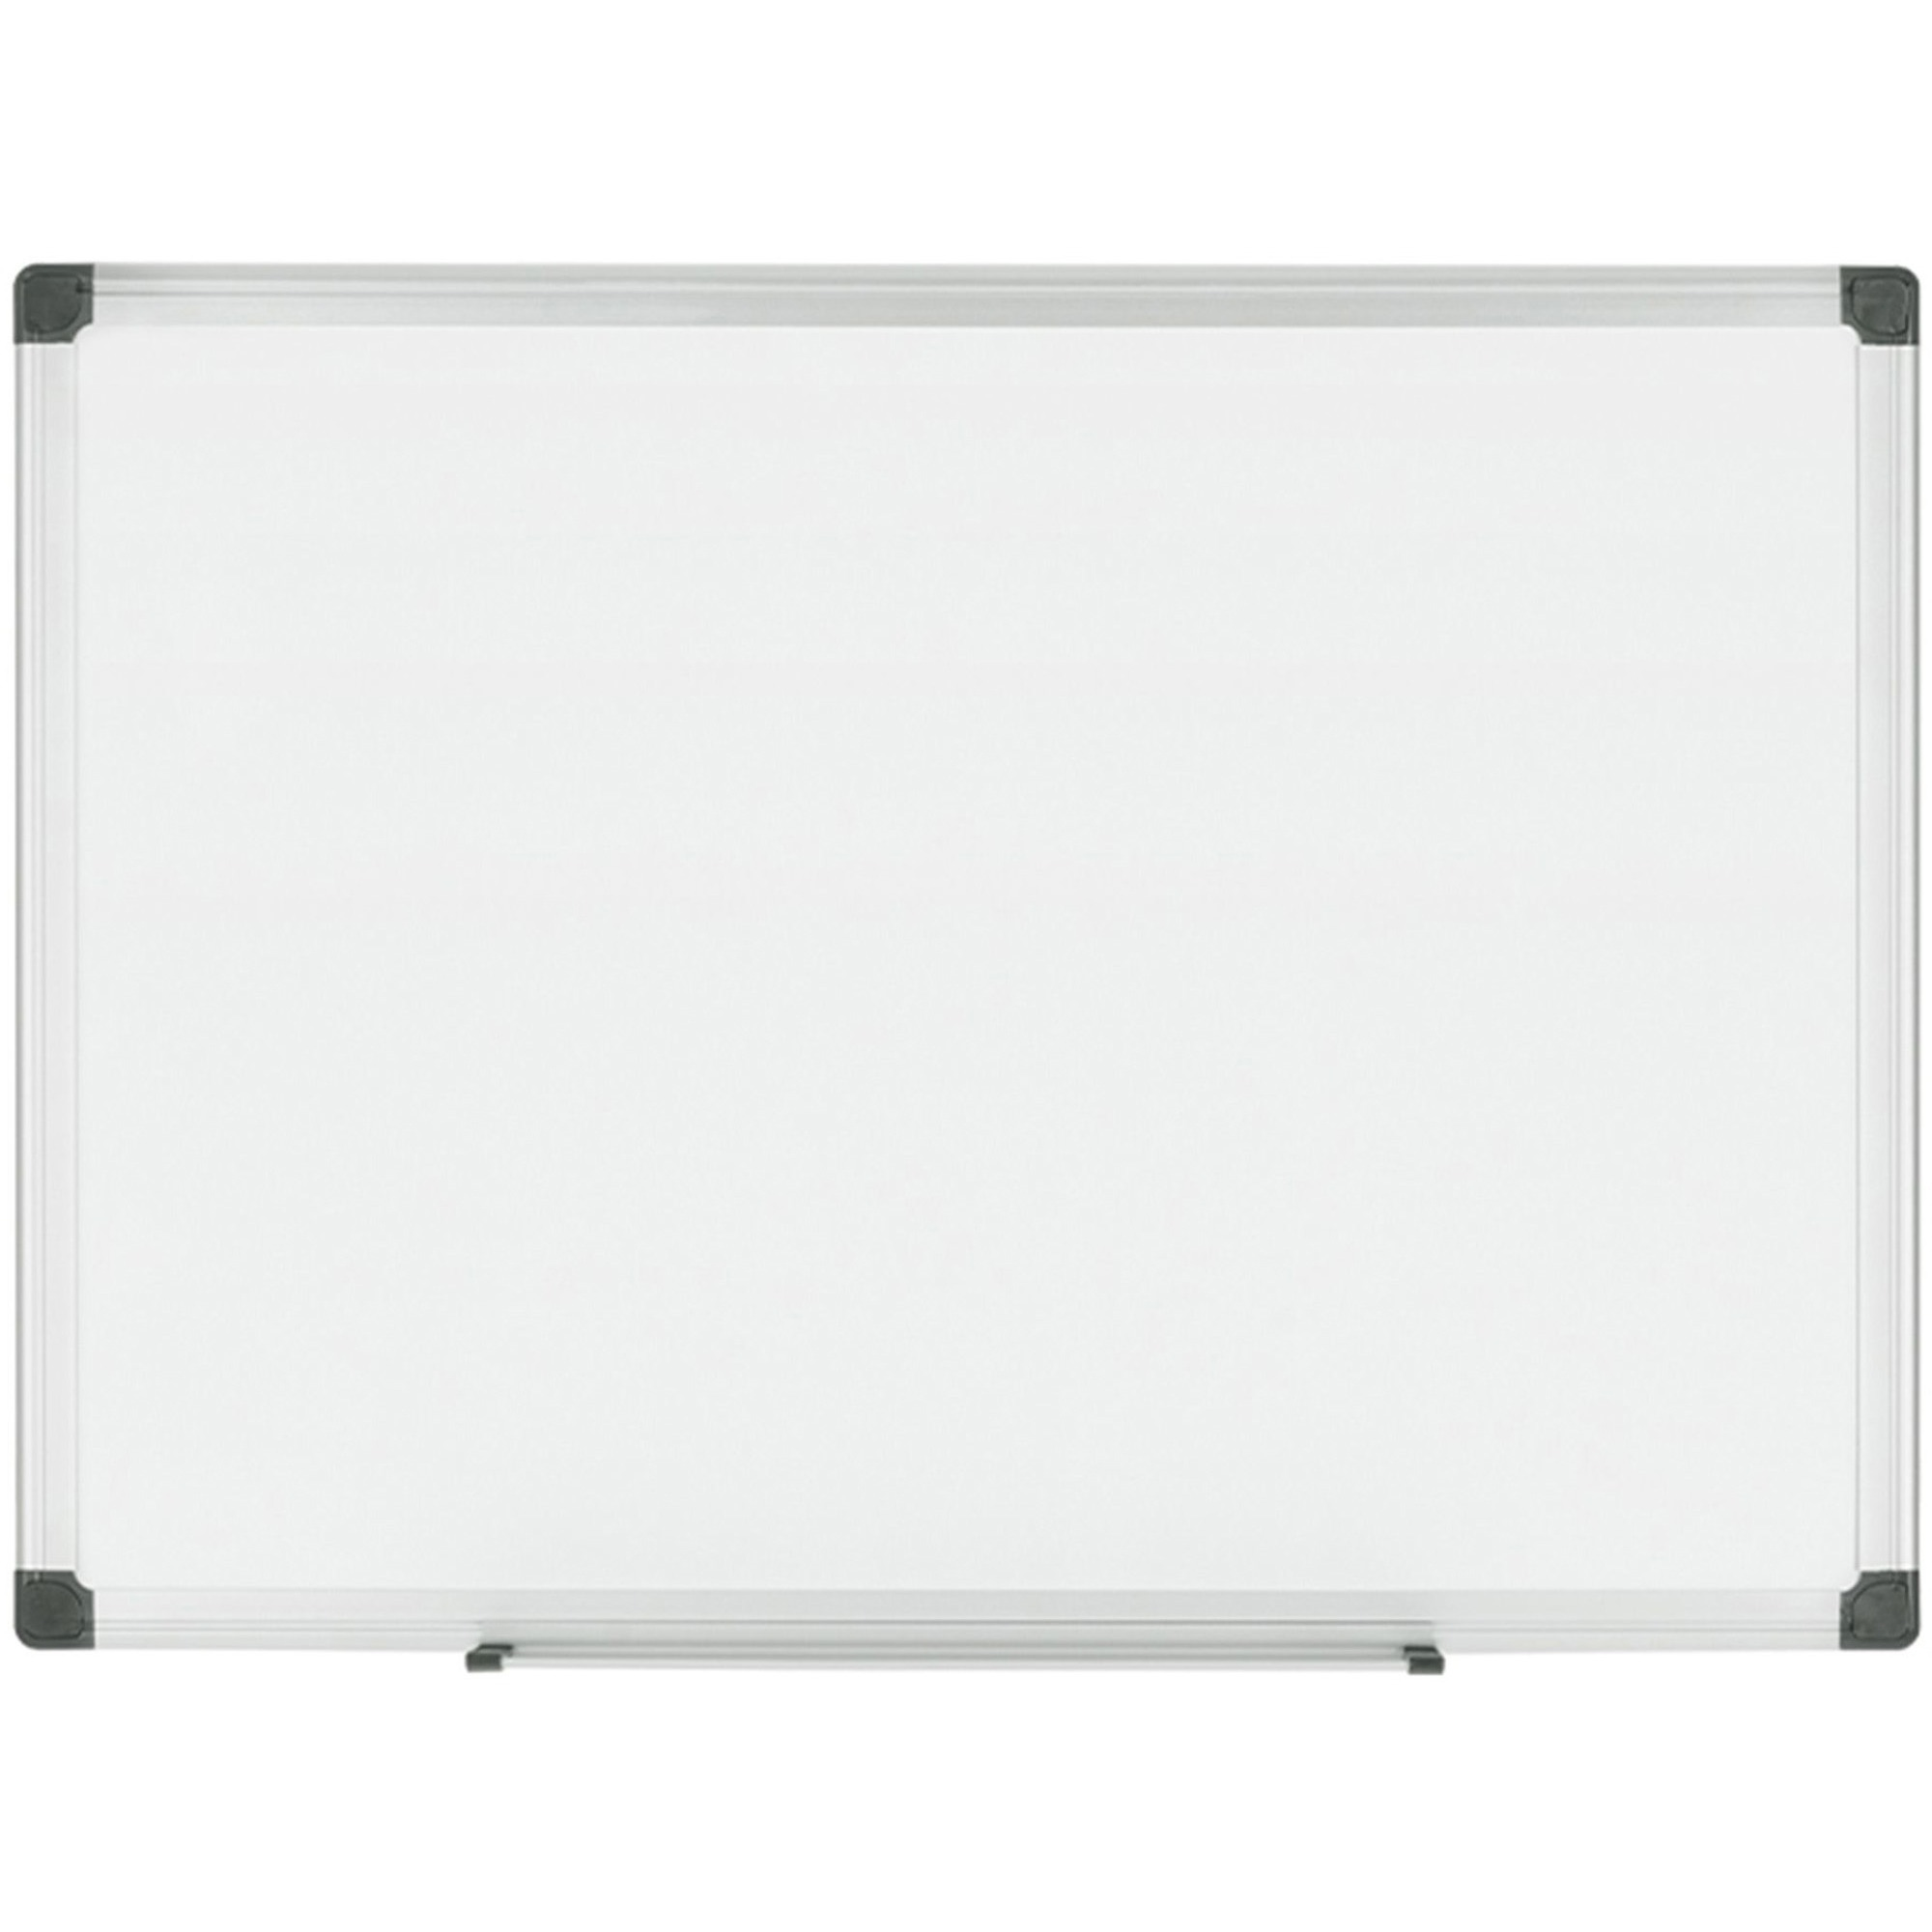 Bi-silque S.a Bi-silque Porcelain Magnetic Dry Erase Board - 48 (4 Ft) Width X 36 (3 Ft) Height - White Porcelain Surface - Silver Aluminum Frame - Rectangle - Horizontal/vertical - Mount - 1 Each